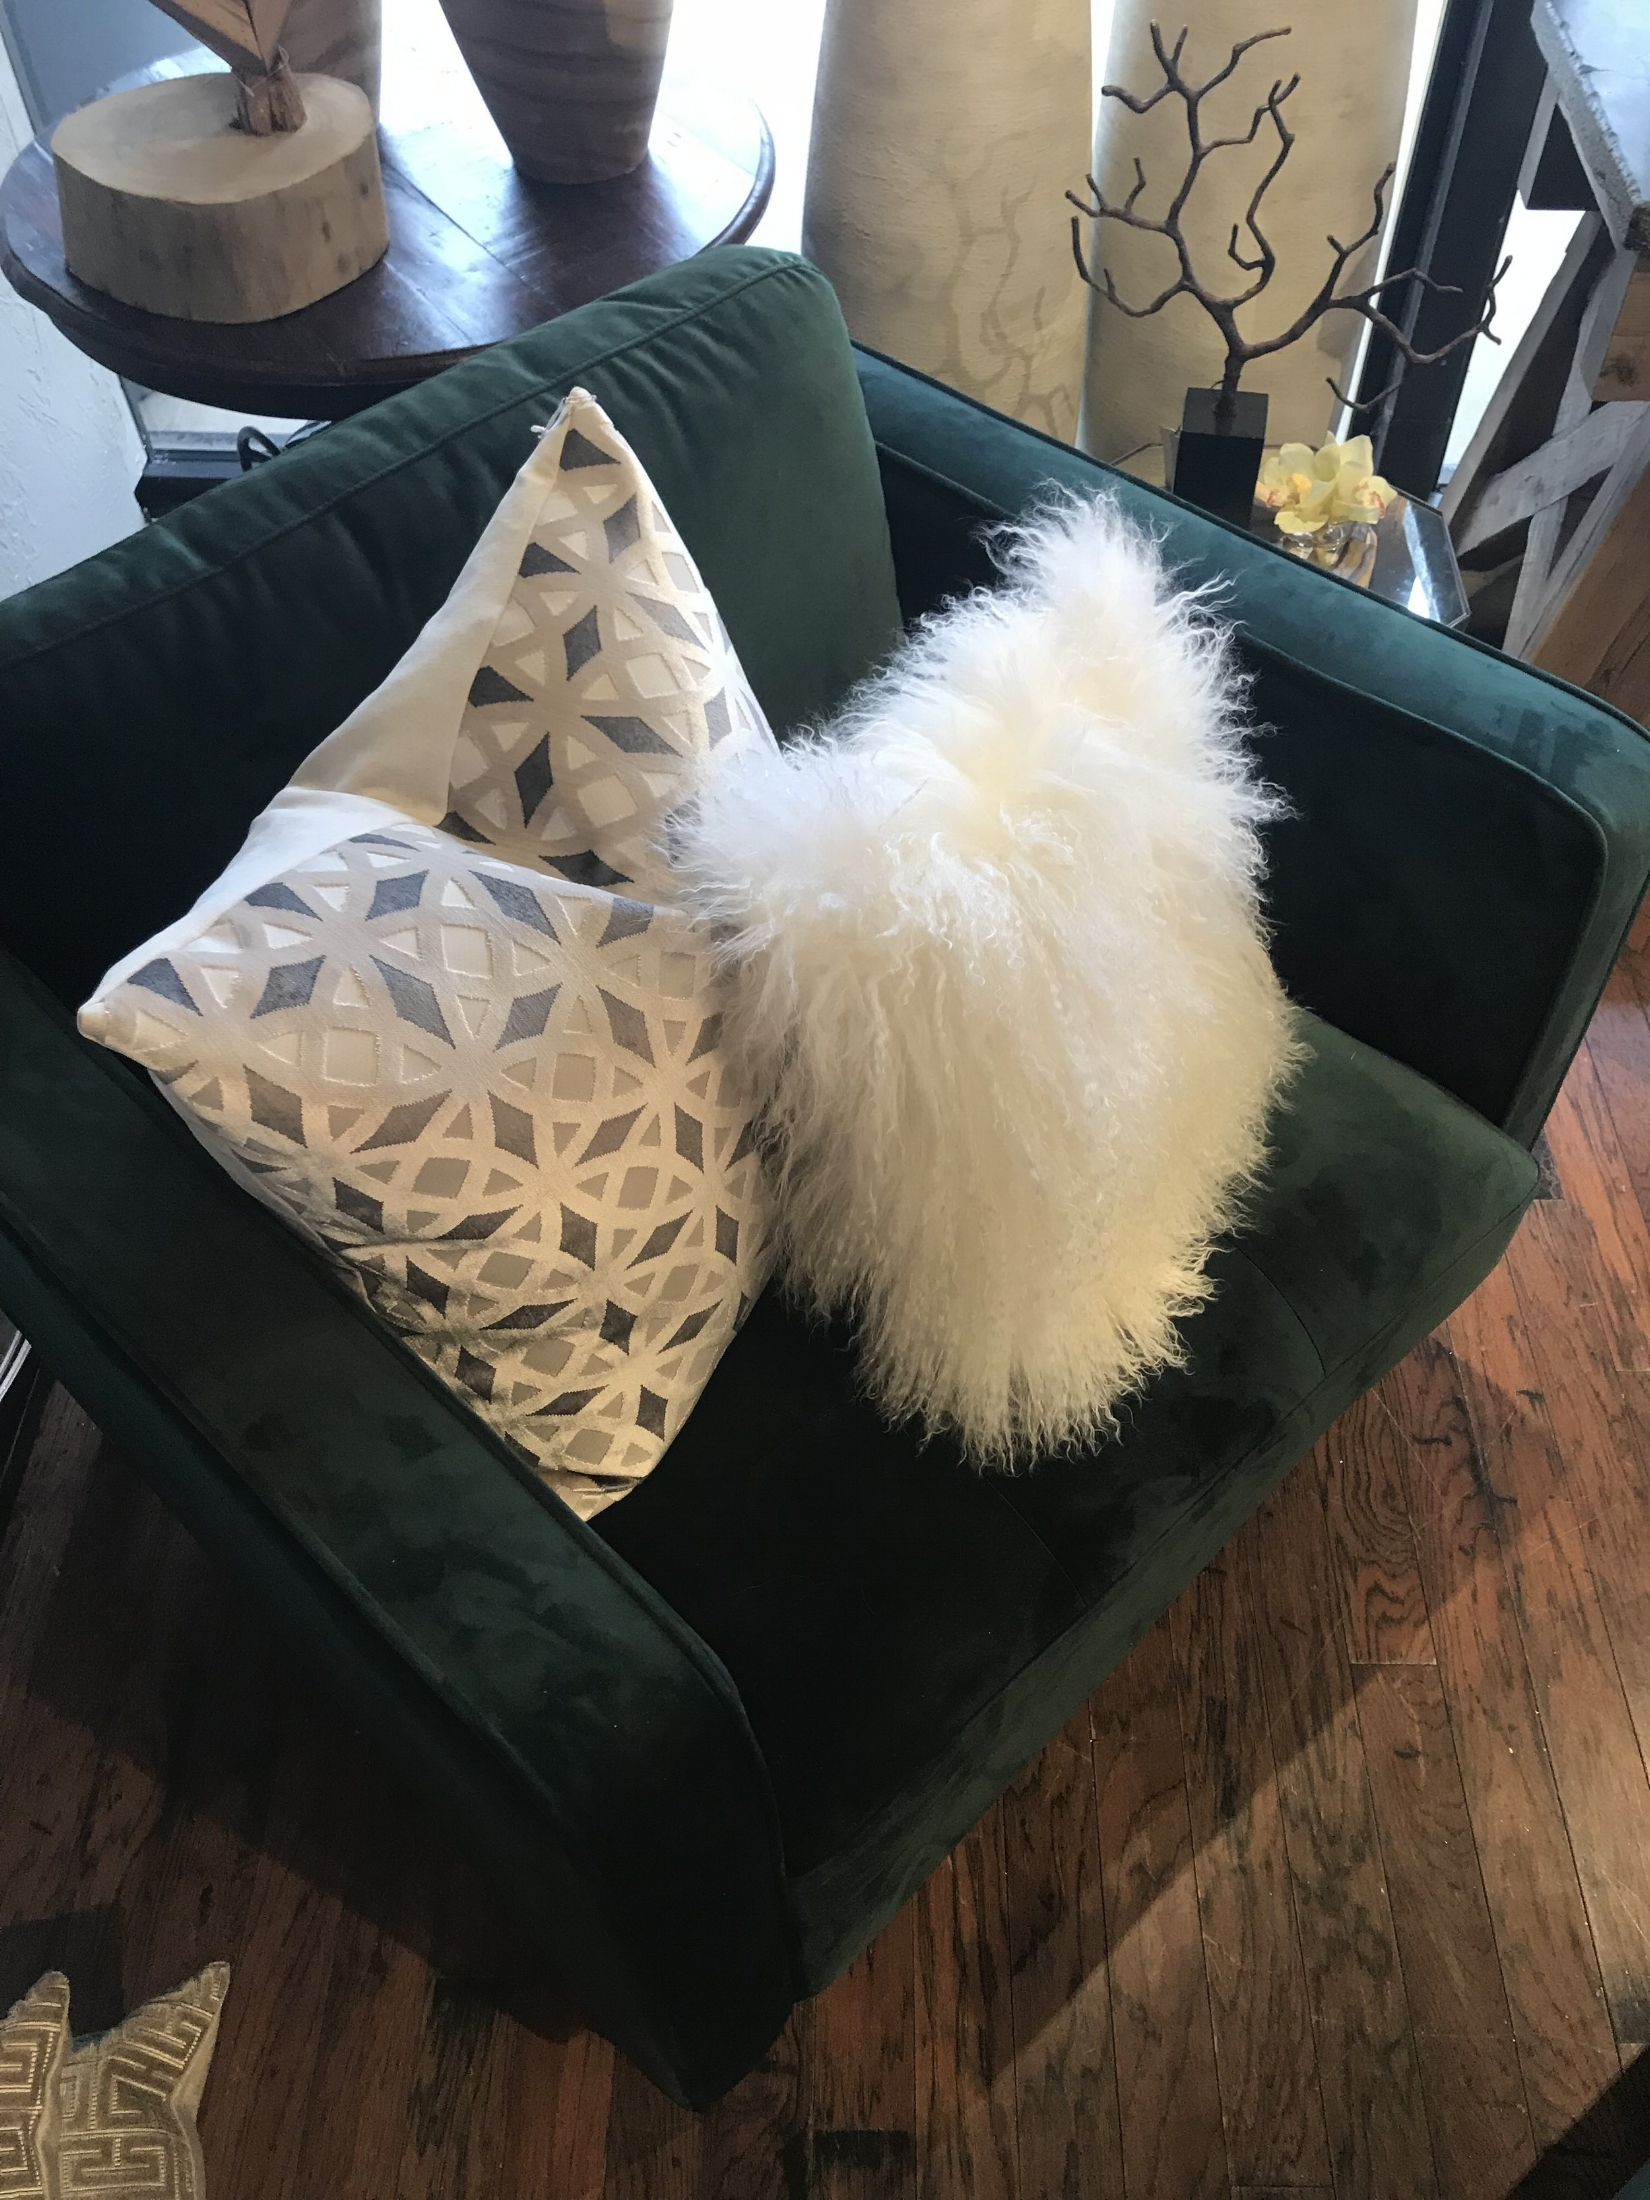 Toss On Some Pillows - I know you are tired of me saying it, but pillows will do wonders for your home. This emerald chair gives off bold vibes the instant it snatches your attention. Pillows will help define your chairs mood. Throw on some silvers and fur for a tiny bit of neutral glam, or take it to the next level of bold with a white and hot pink lumbar.